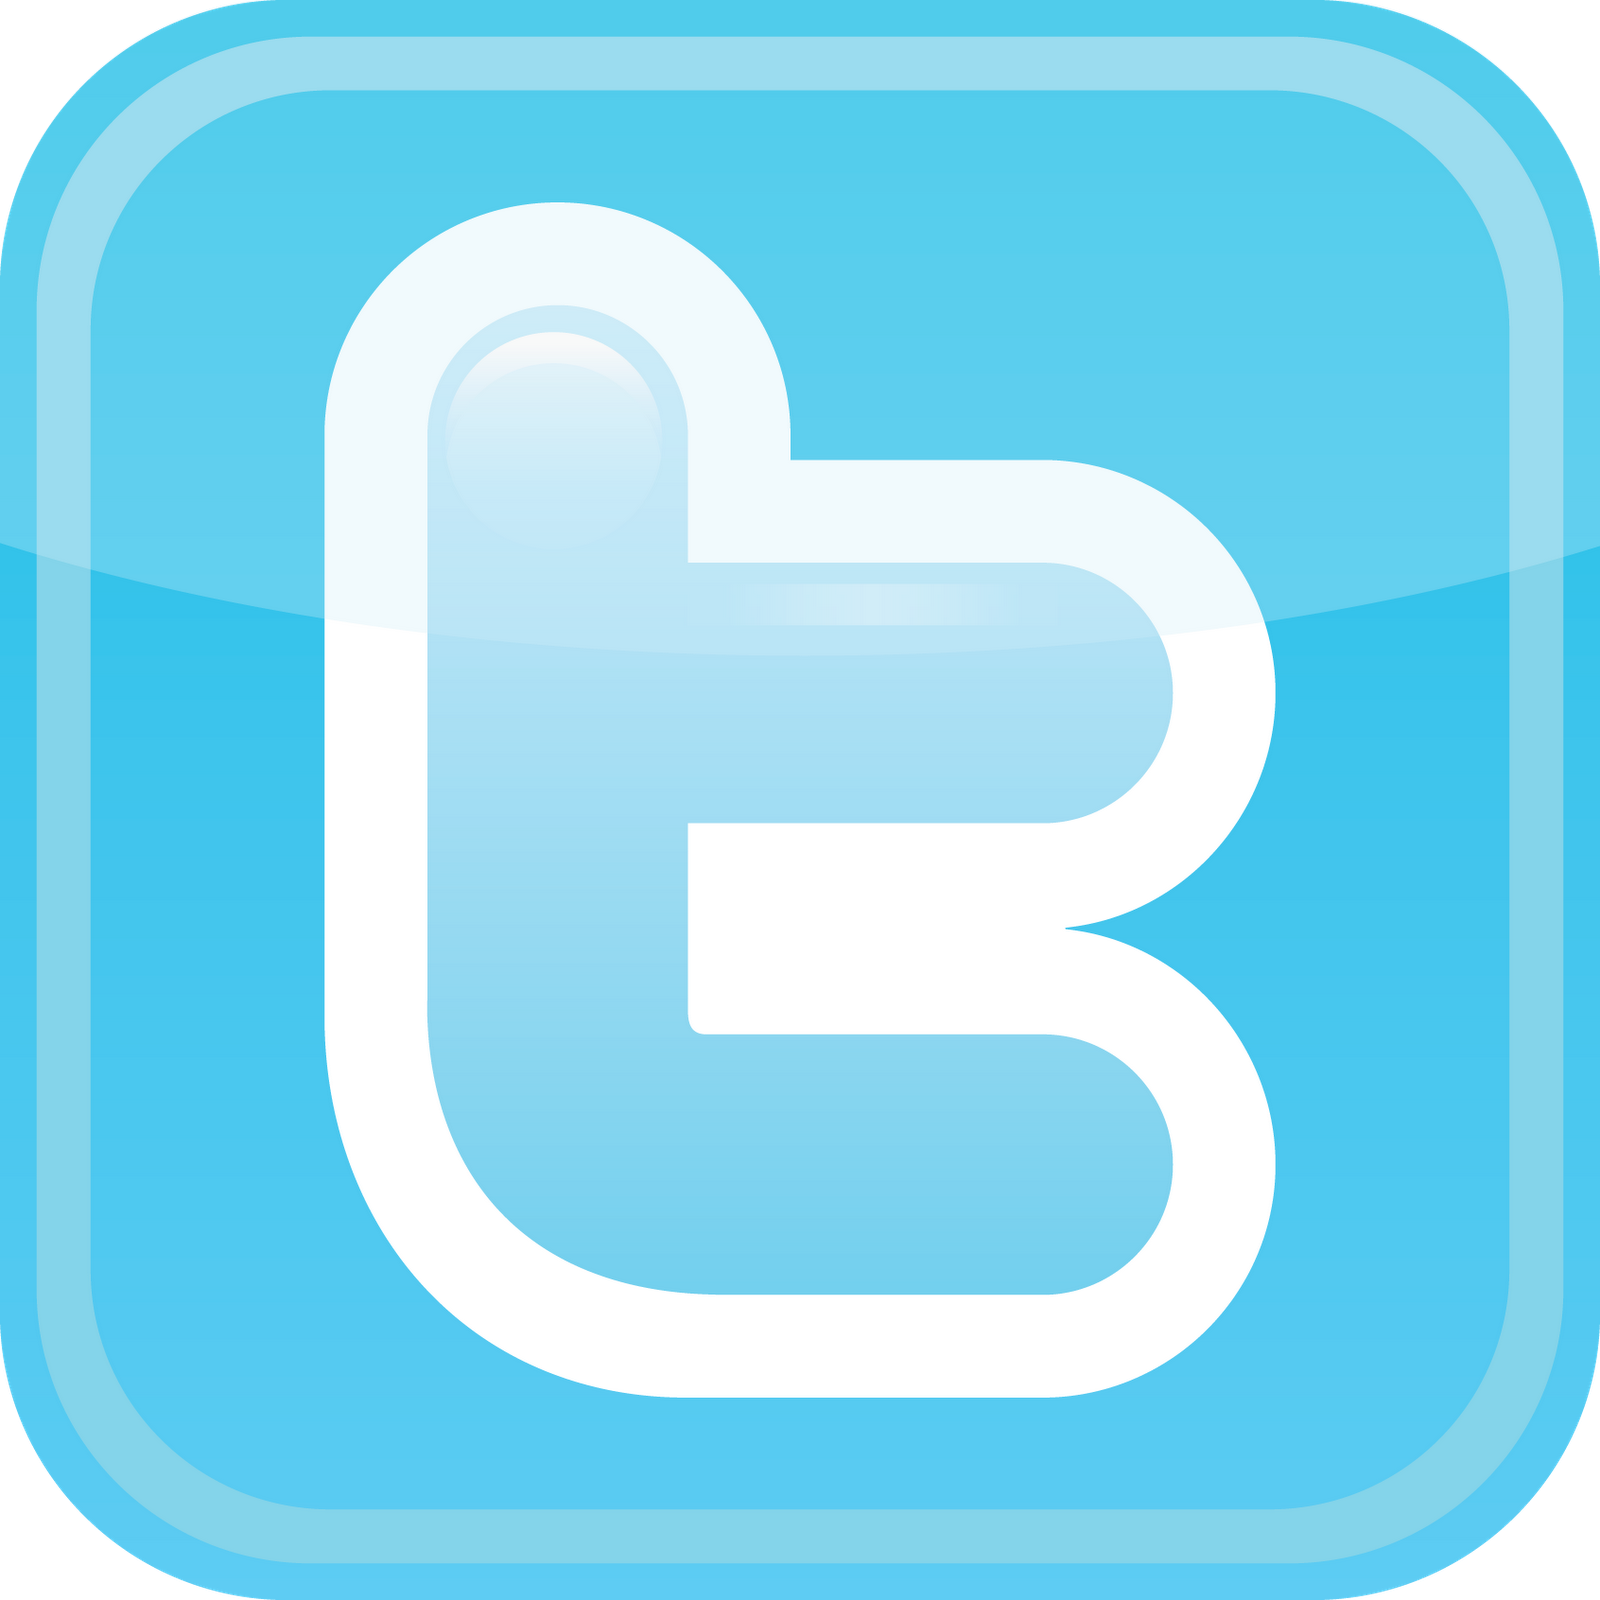 Twitter_logo_transparent-3